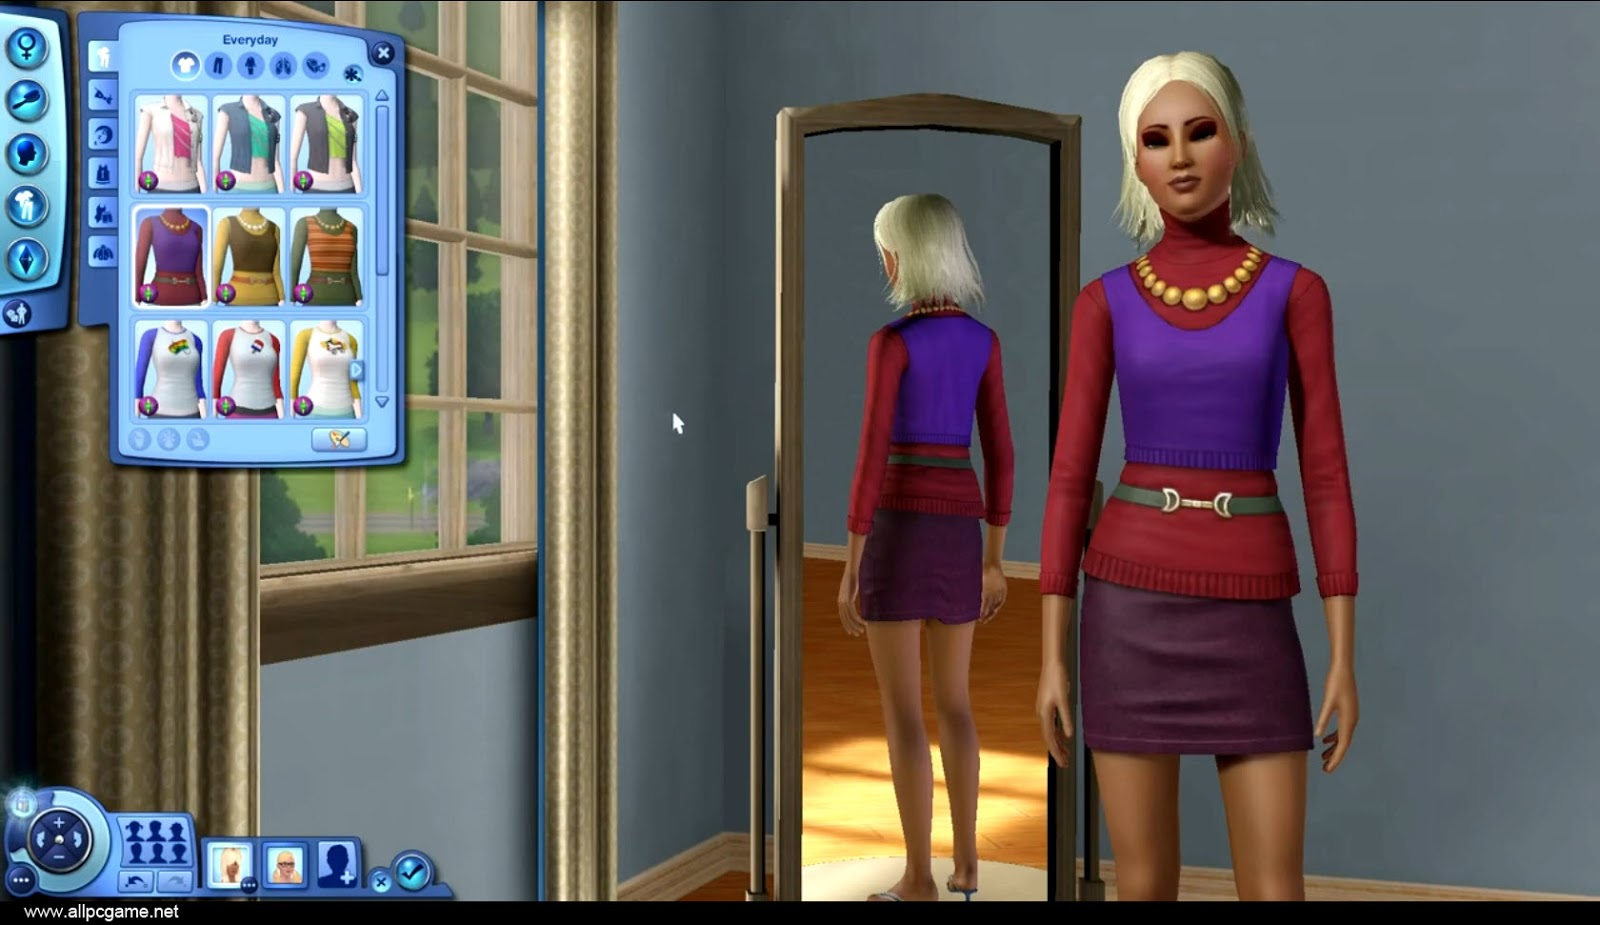 The Sims 3: 70s, 80s, & 90s Stuff Pack Review - all Pc Game